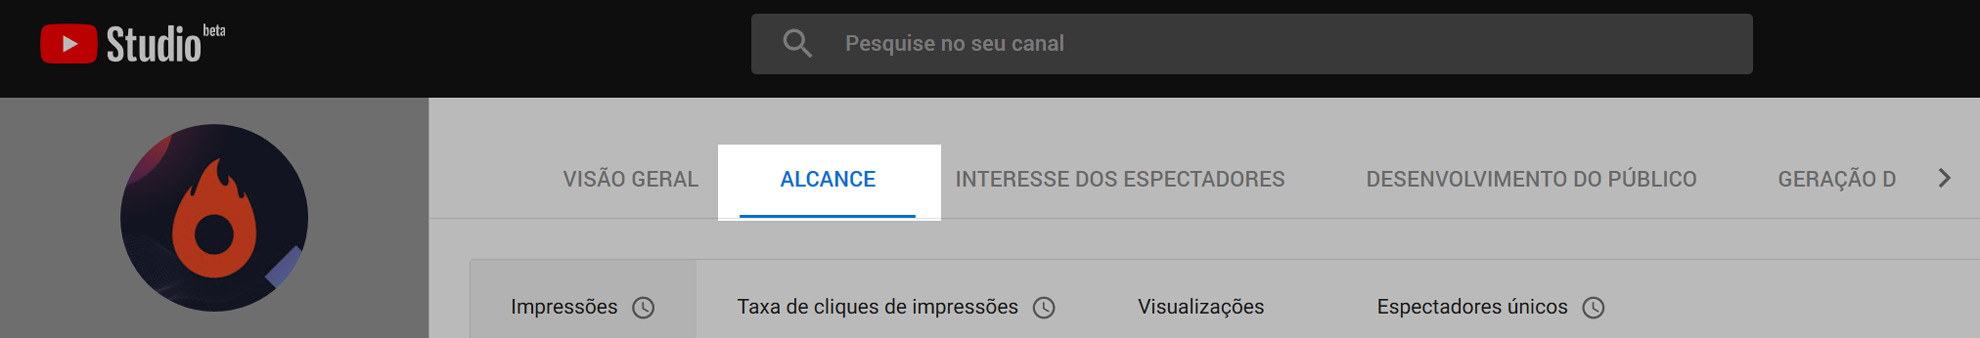 aba-alcance-youtube-analytics